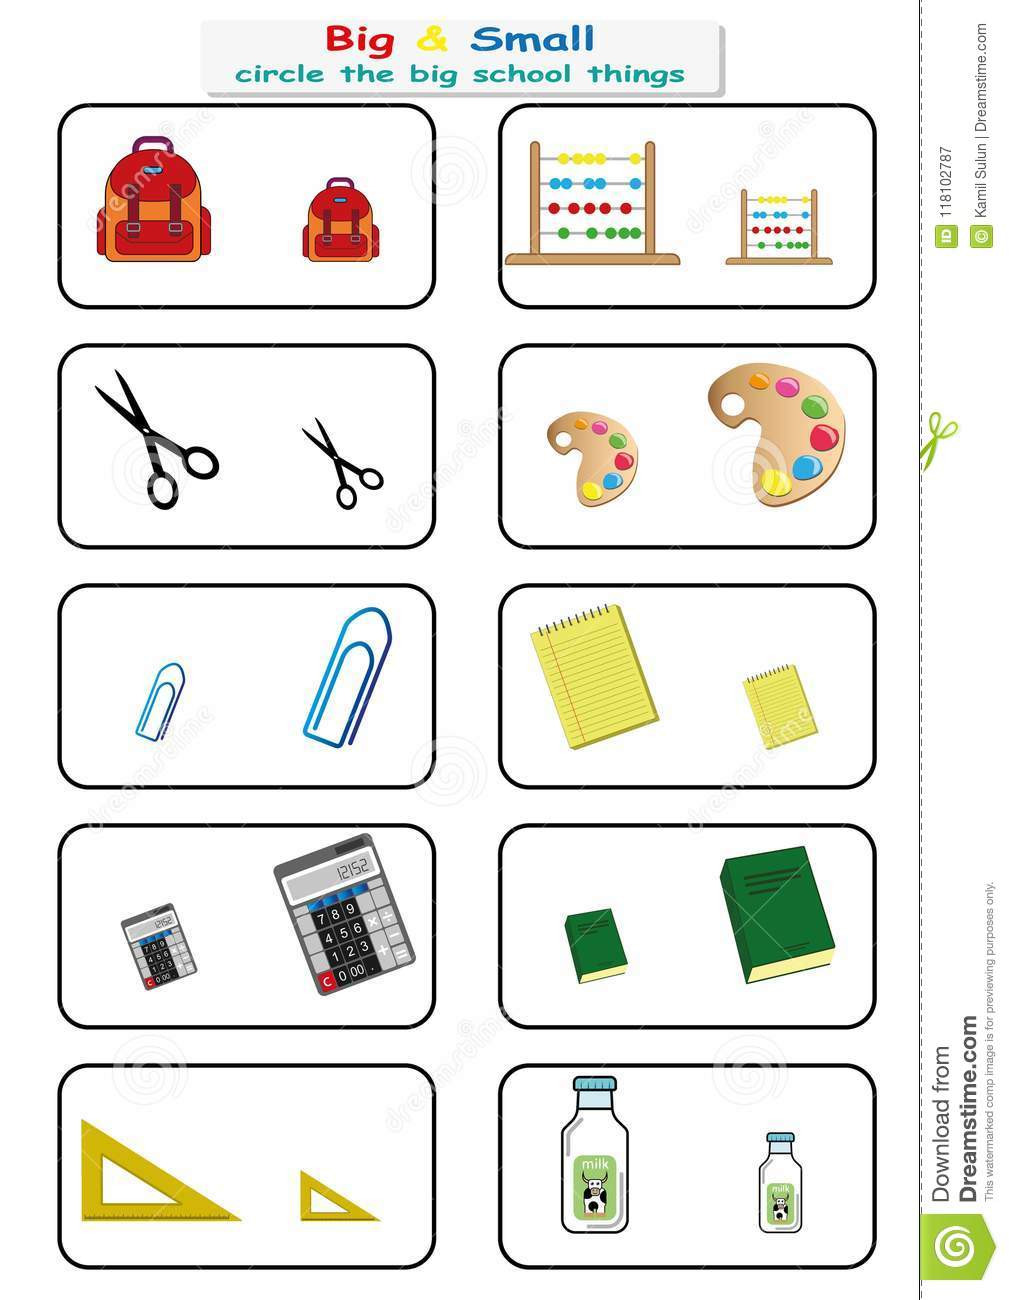 Preschool Opposite Worksheet Circle the Big School Things Find Big Small Worksheet